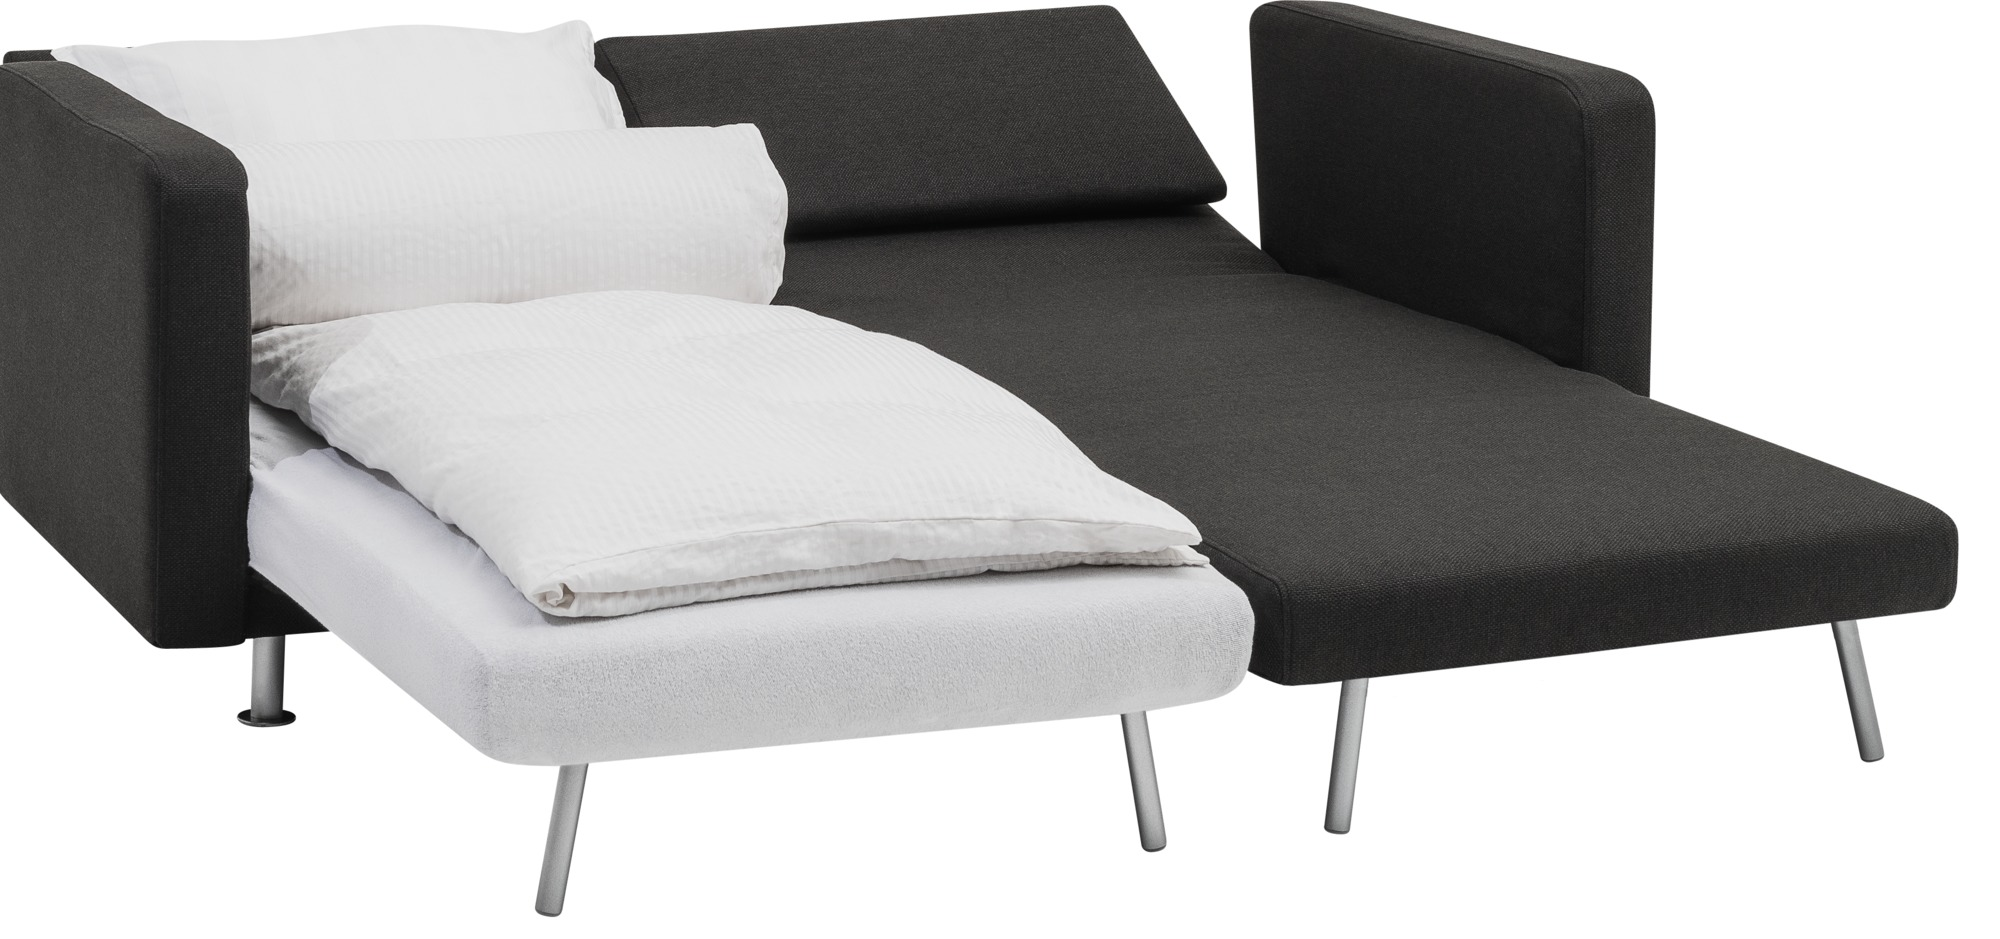 Melo 2 Sofa With Reclining And Sleeping Function